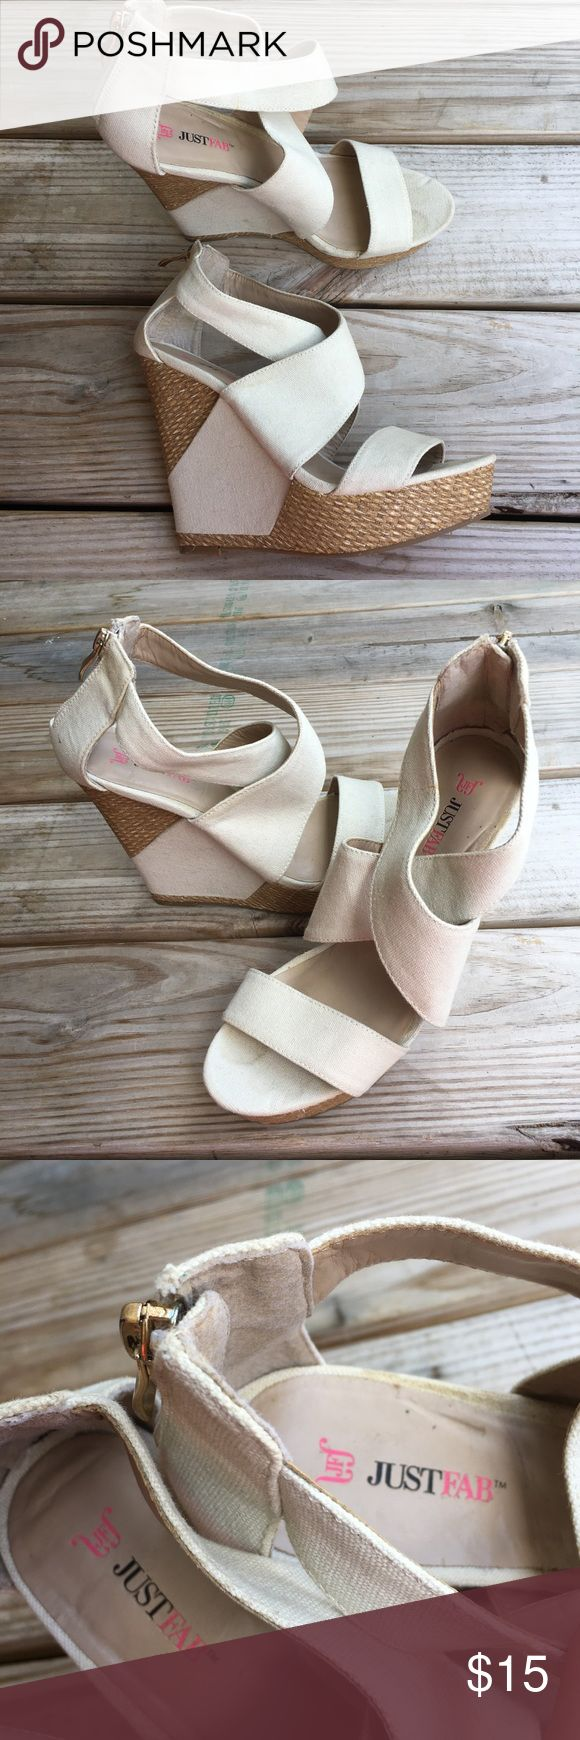 """Just Fab """"Belfast"""" Cream Wedges Just Fab size 8. Style name is Belfast. Super cute for baby showers & graduations! Or any special event. Wedge is about 5 inches tall. Minor staining on Cream part of shoe Just Fab Shoes Wedges"""